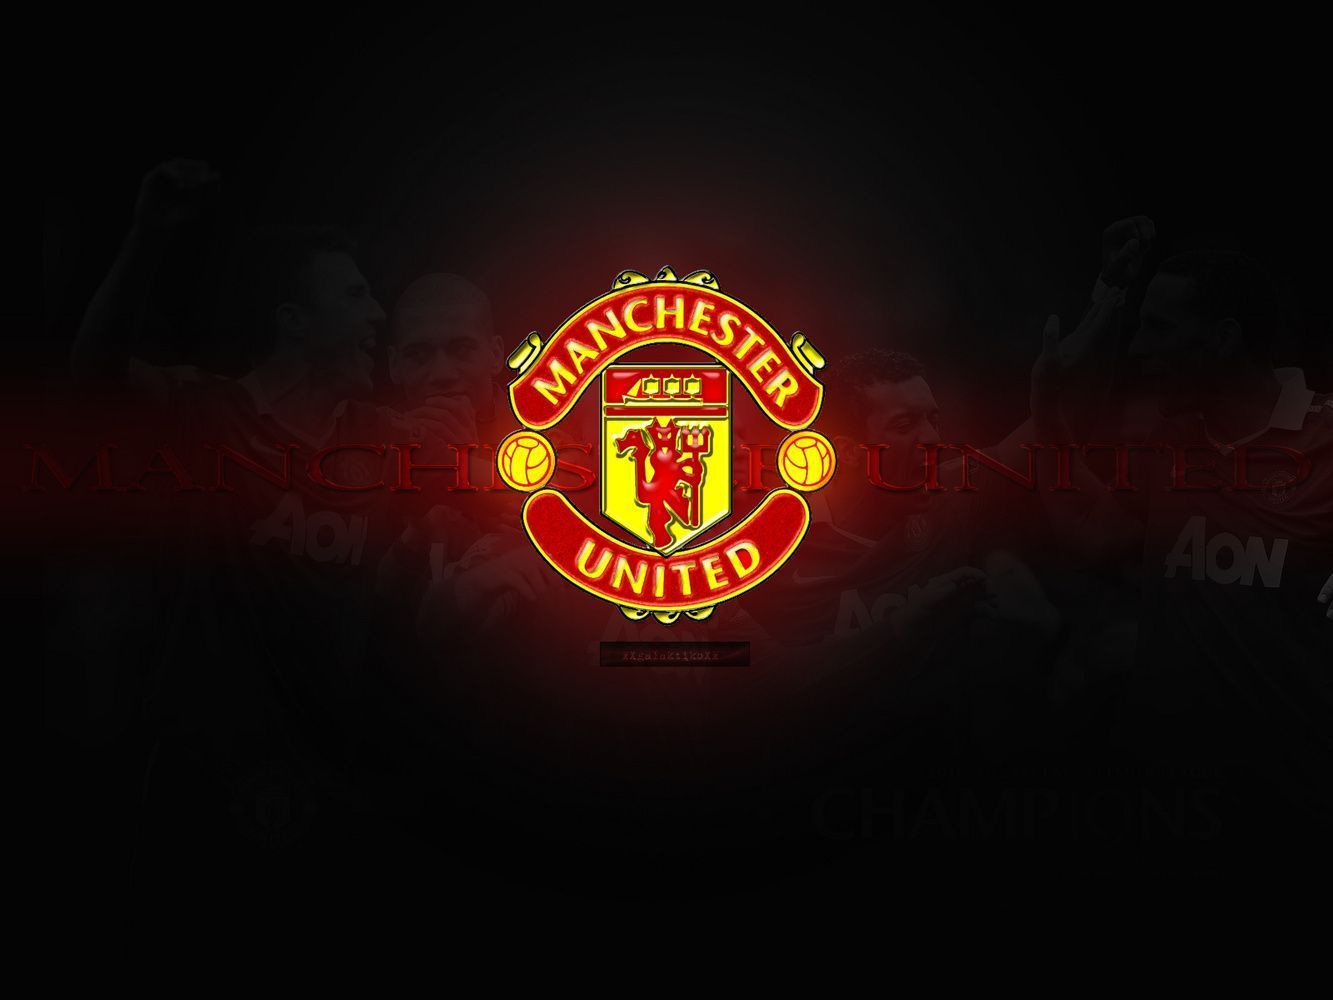 Hd wallpaper manchester united - Manchester United Wallpapers D Wallpaper